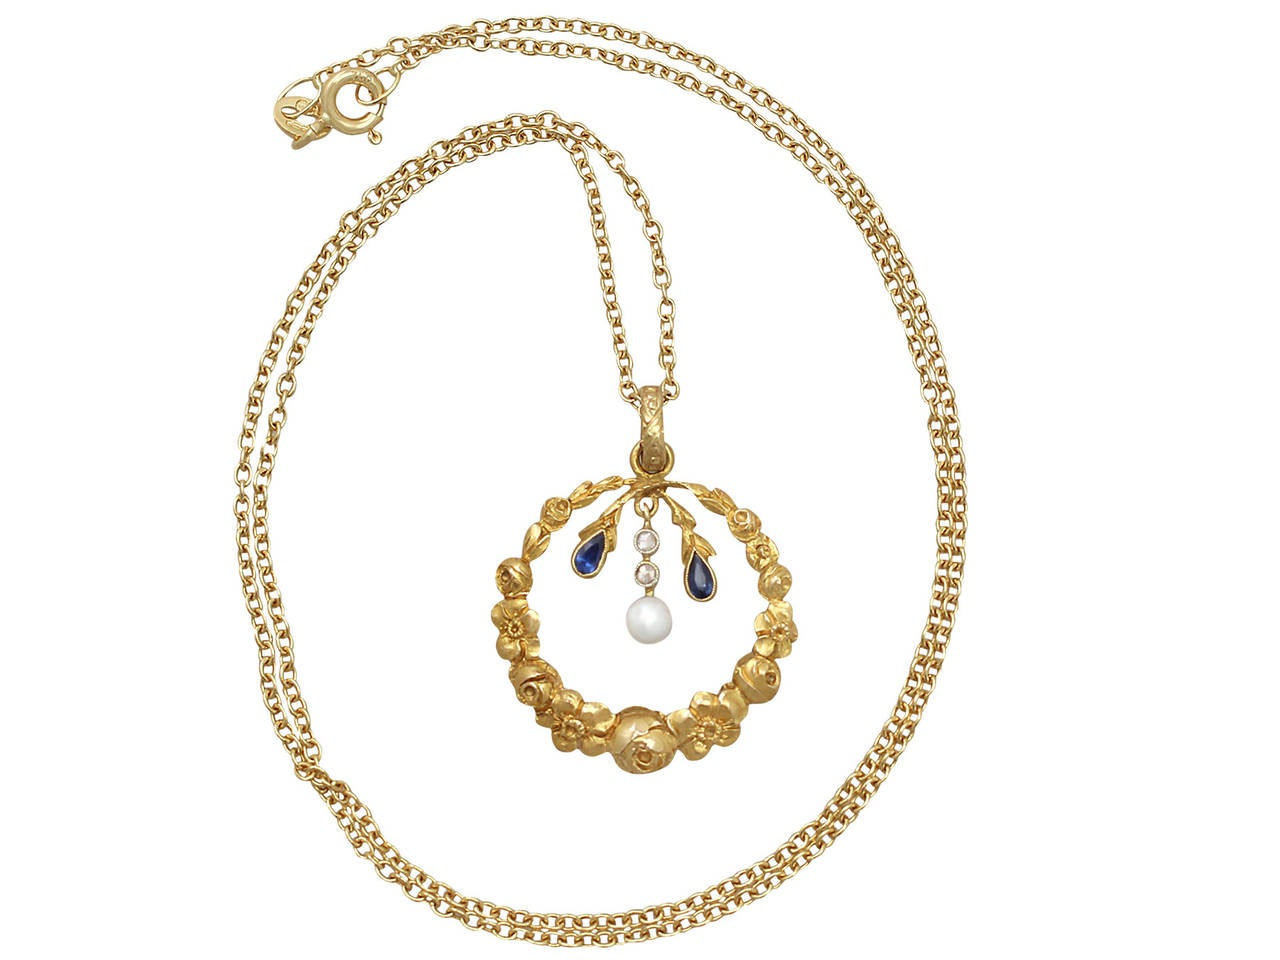 A fine antique pearl, 0.06 carat sapphire and 0.04 carat diamond, 14 karat yellow gold pendant; part of our antique jewelry and estate jewelry collections  This fine antique sapphire pendant has been crafted in 14k yellow gold.  The pendant has a